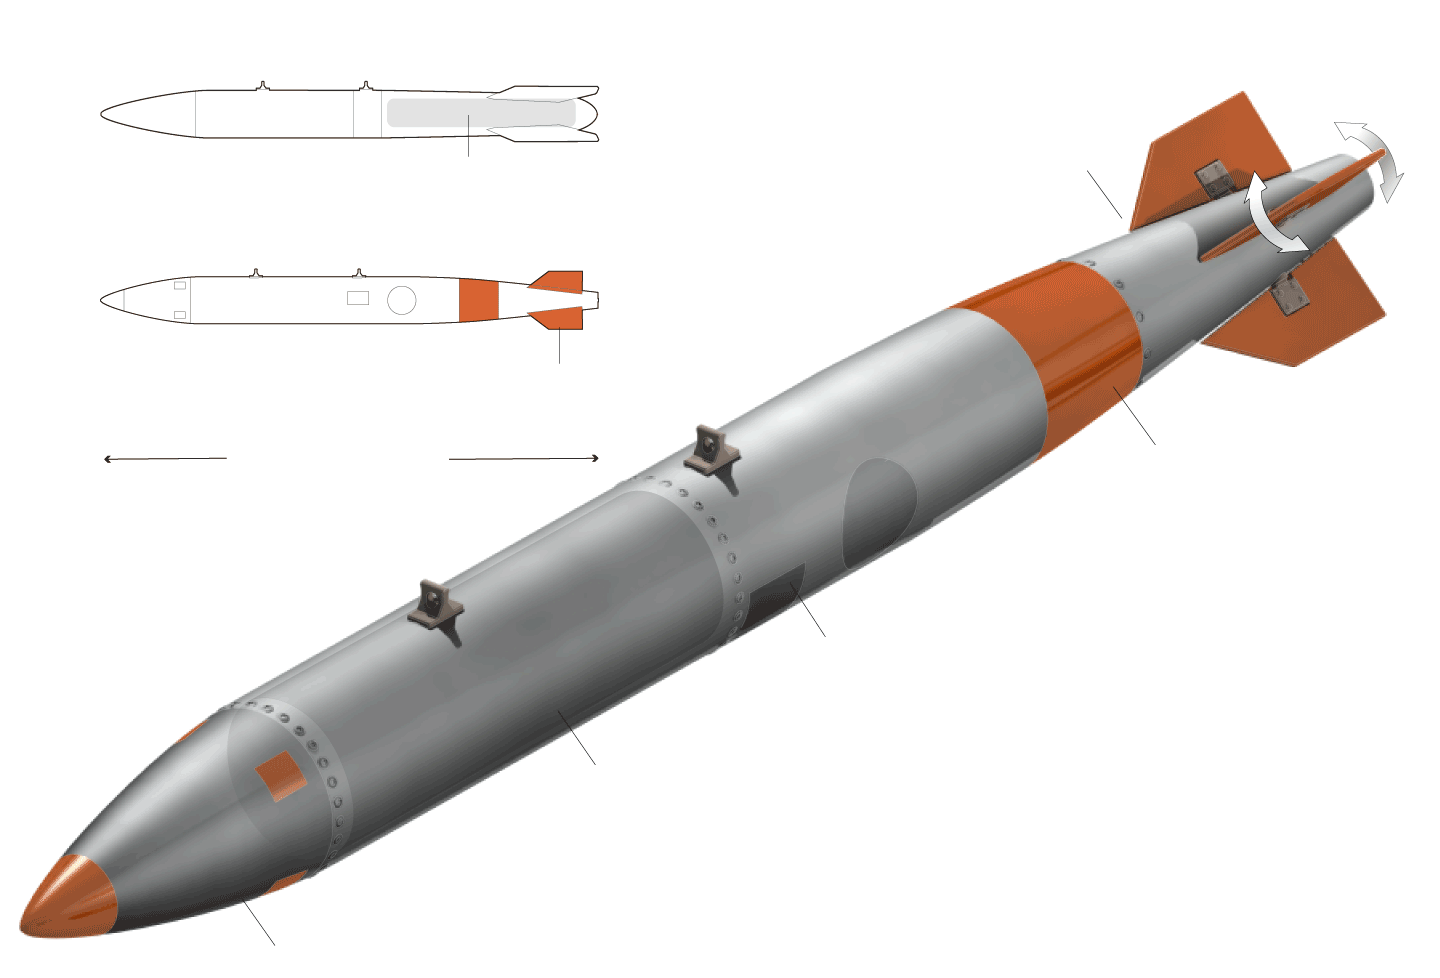 Nuclear drawing missile. Png transparent images all